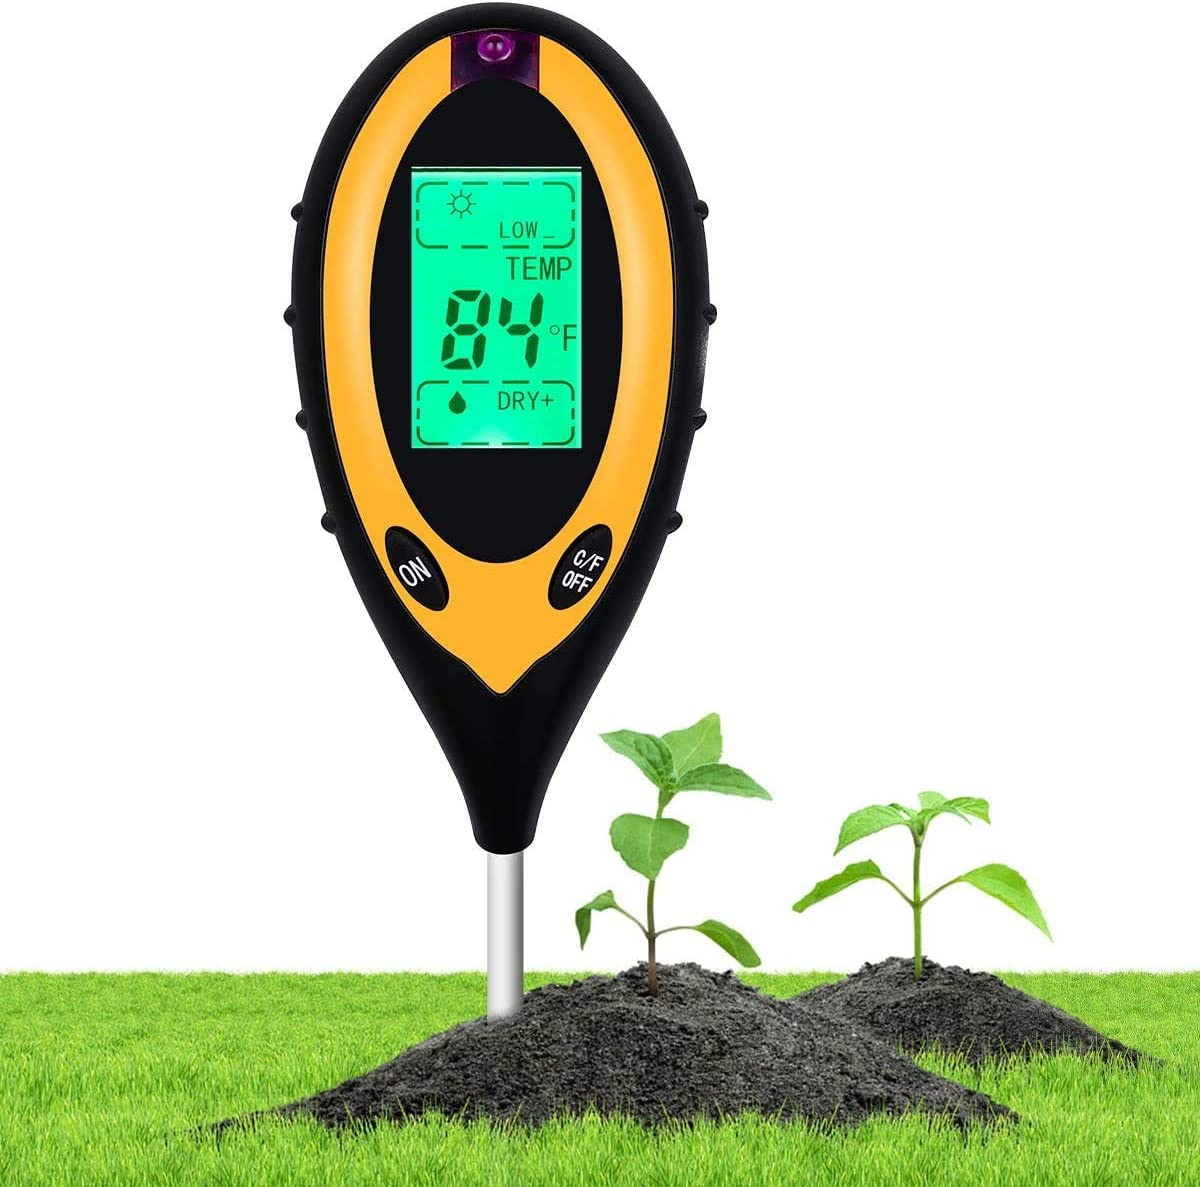 Beauty HAO 2021 Upgraded Soil pH Meter Soil Tester, 4 in 1 Soil Test Kit, pH Moisture Temperature Light Water Tester and Monitor, Testing Kits for Garden, Farm, Lawn, Indoor and Outdoor(K)